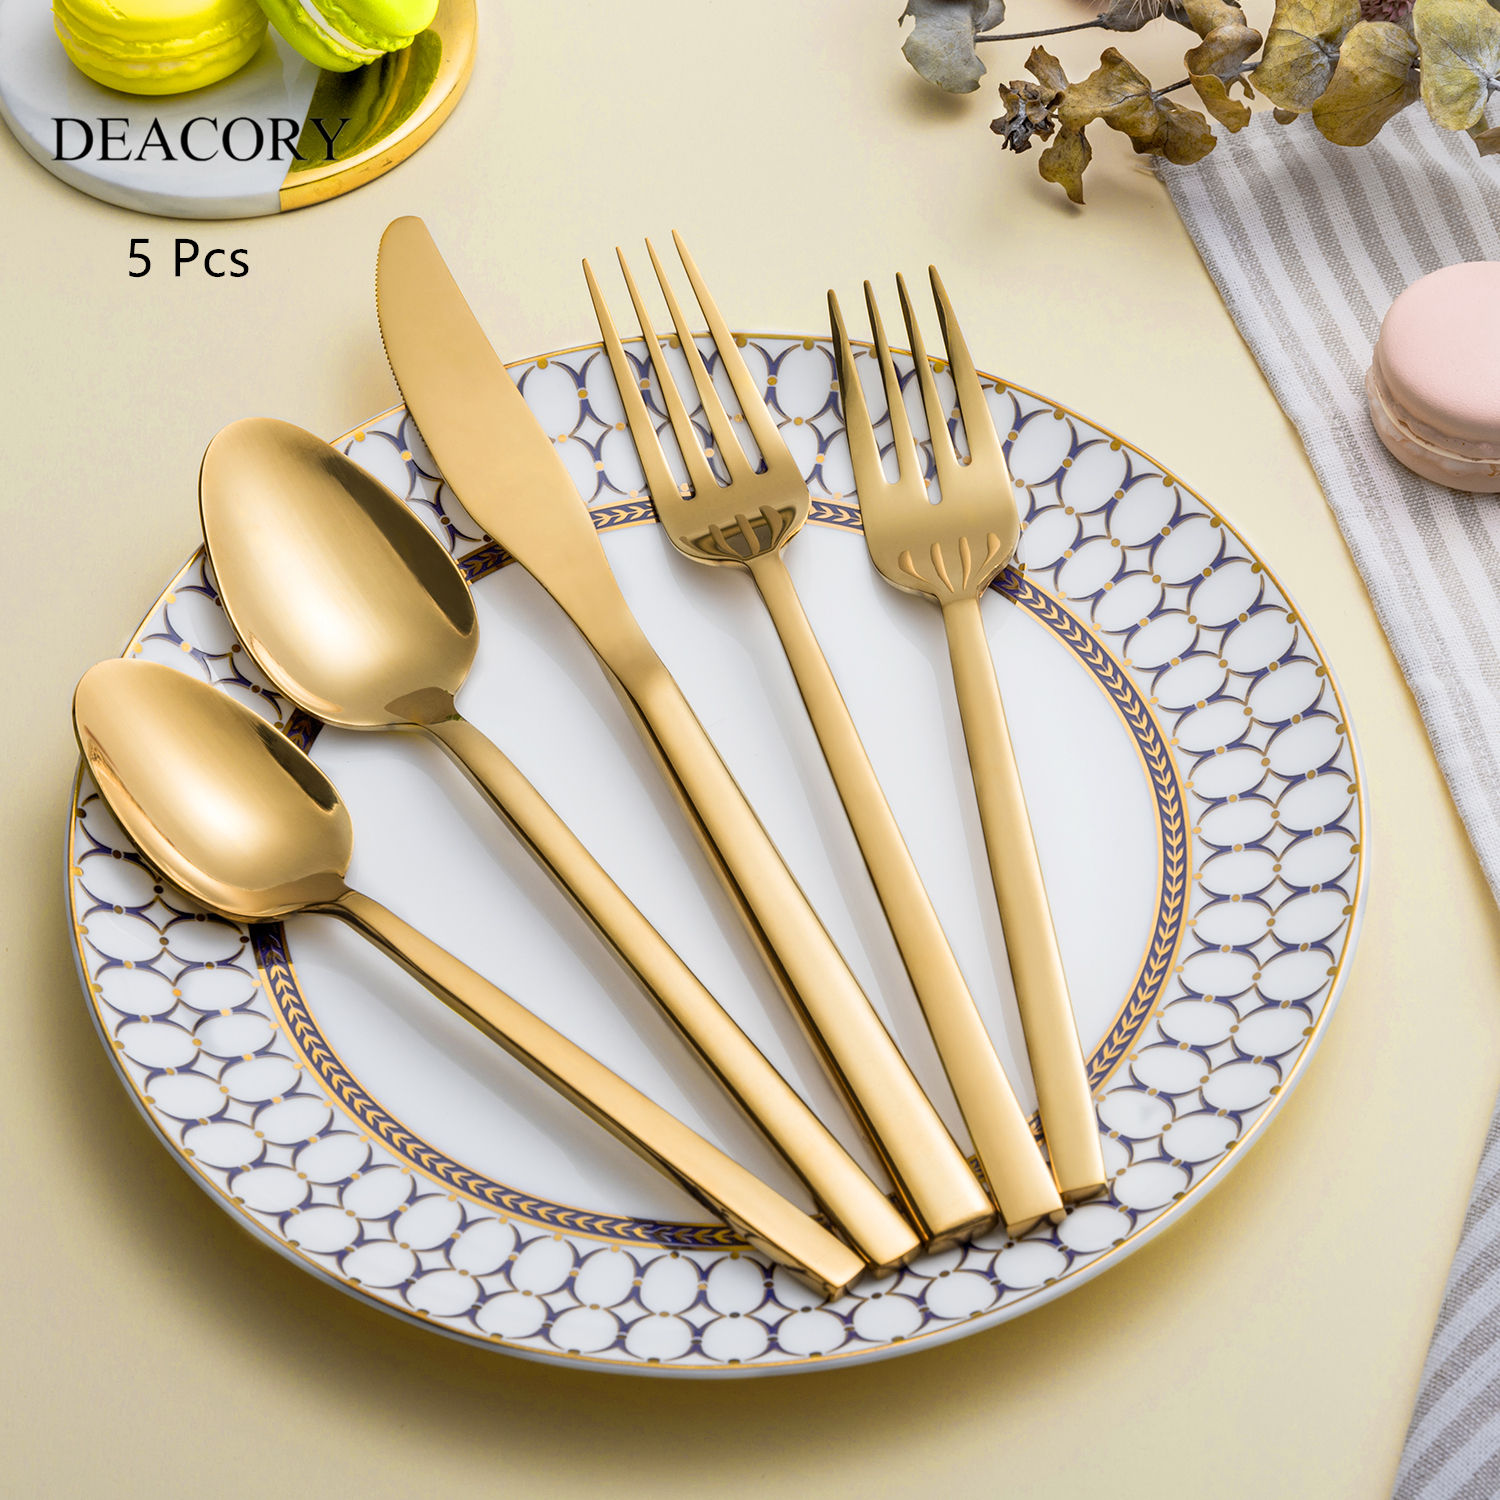 Wholesale restaurant cutlery, gold cutlery sets, stainless steel flatware for wedding